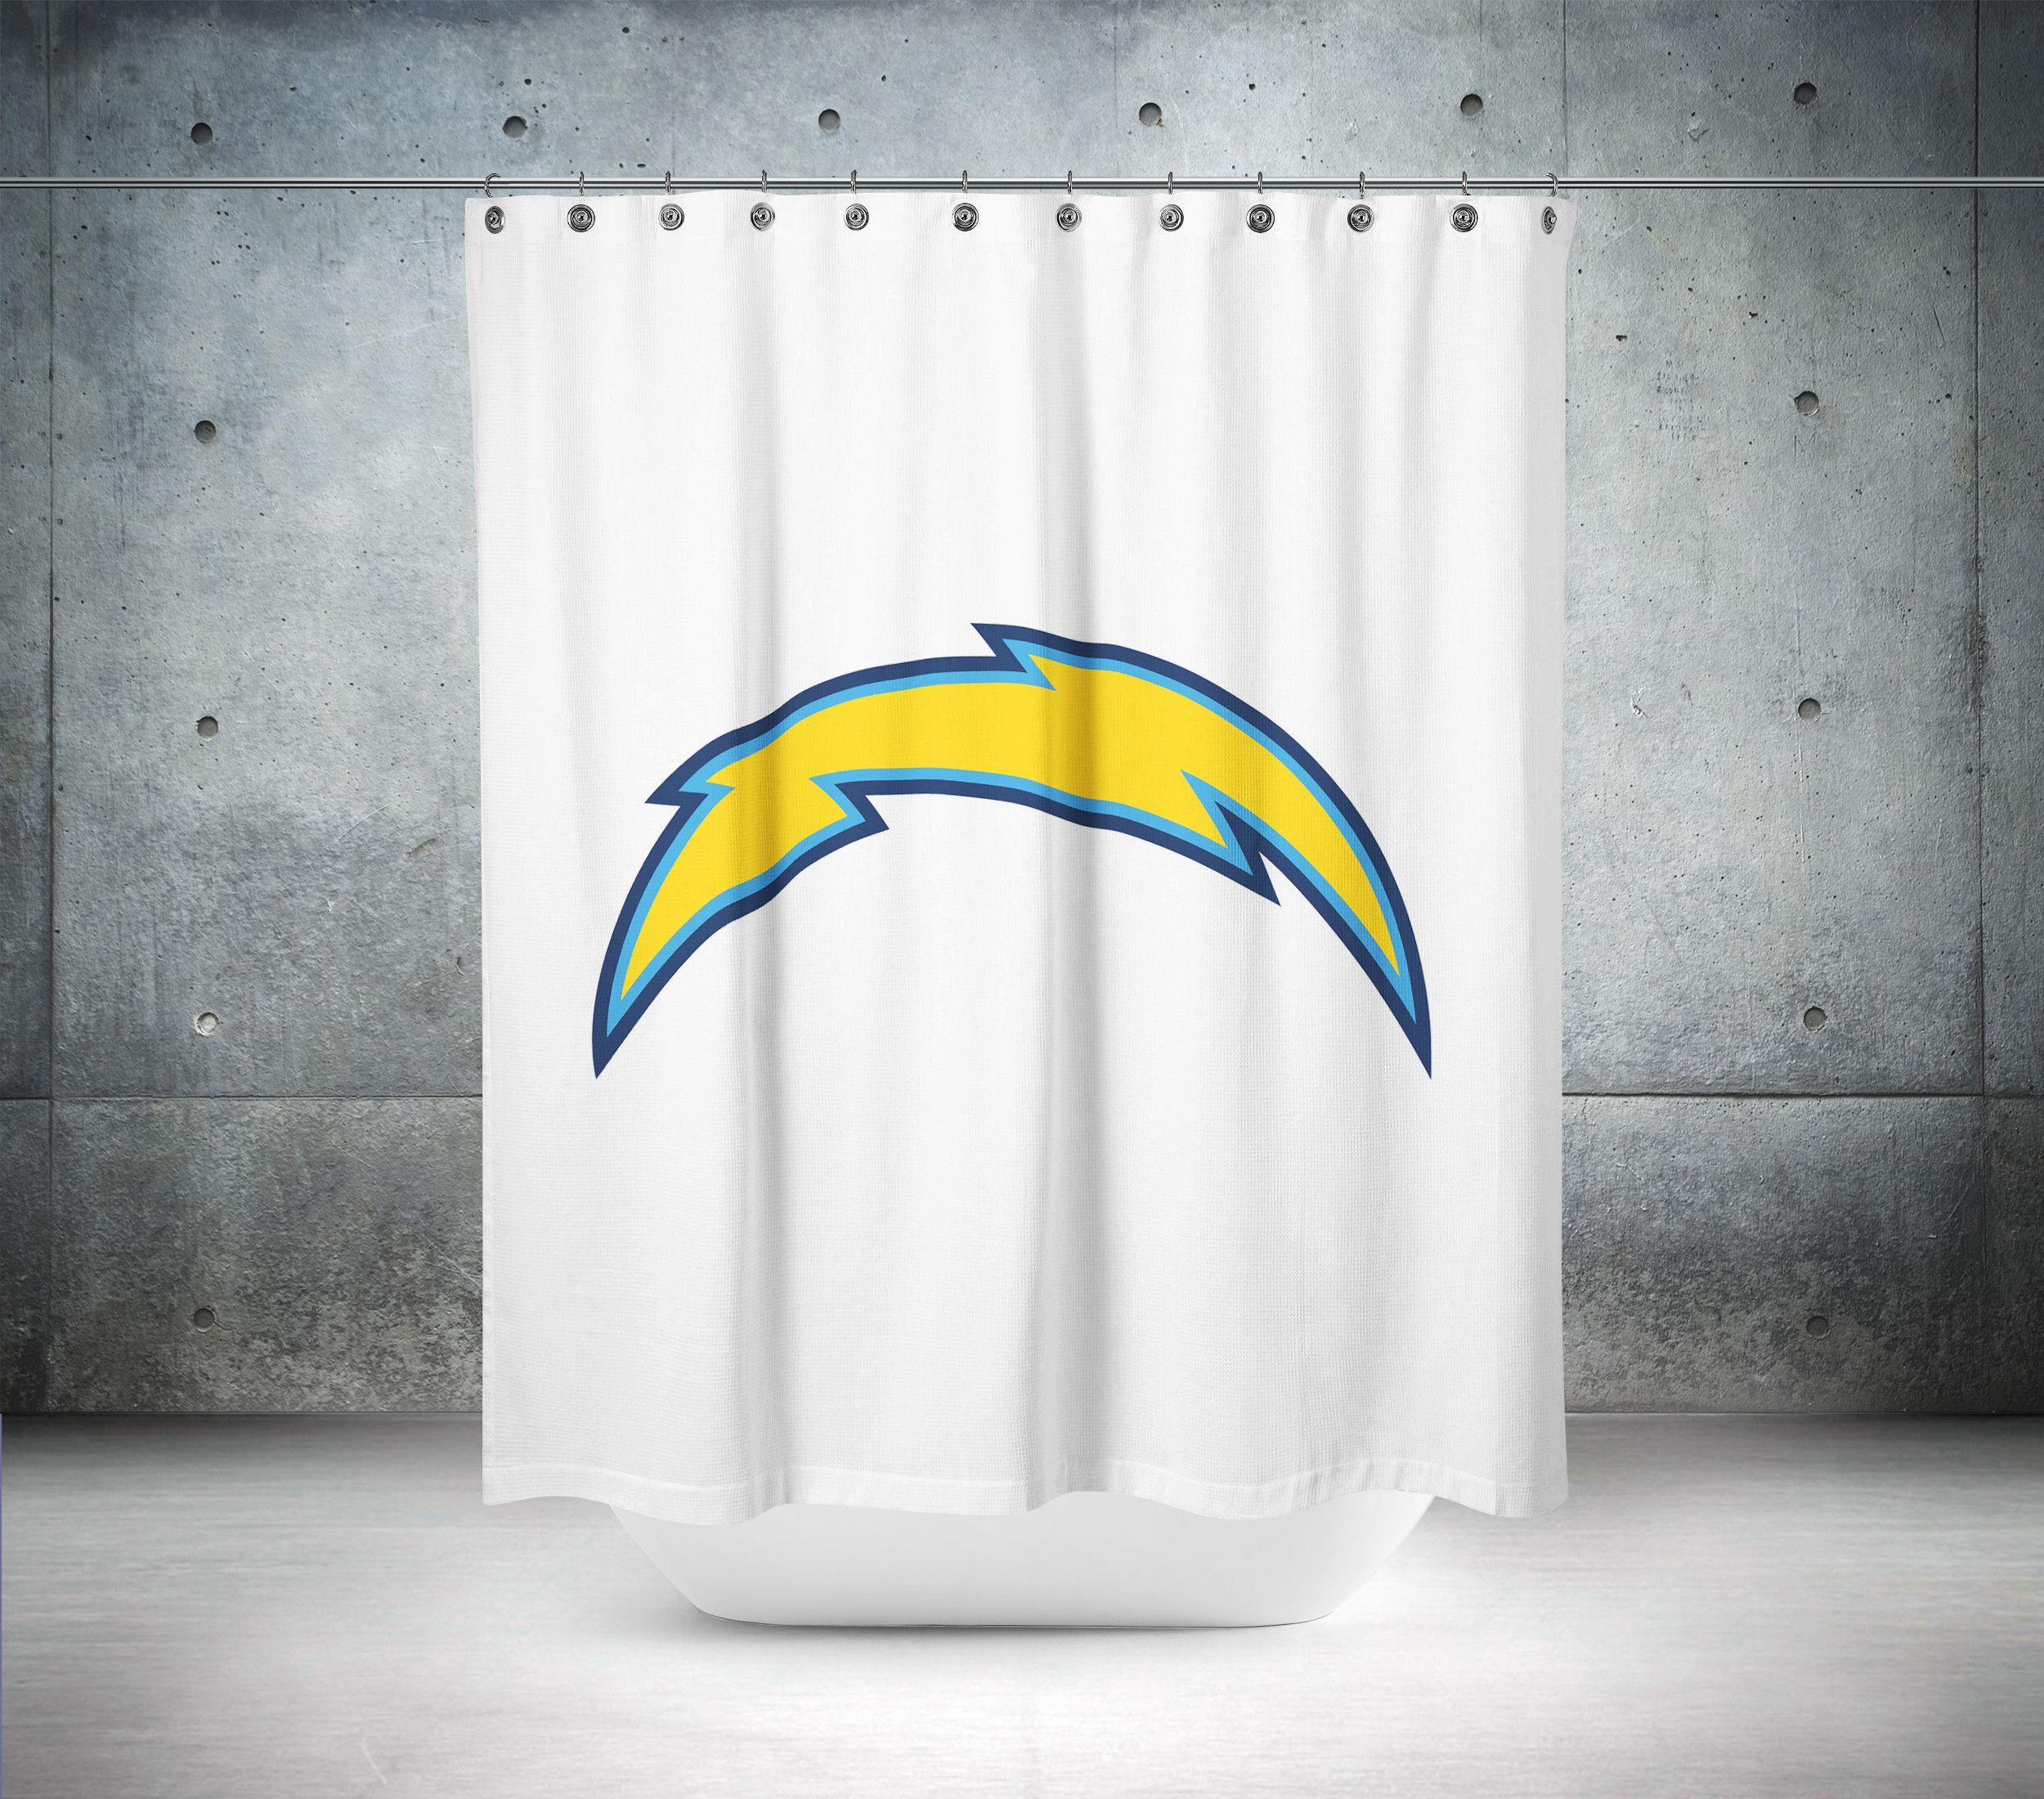 San Diego Chargers Nfl Shower Curtain Curtains Shower Curtain Chargers Nfl